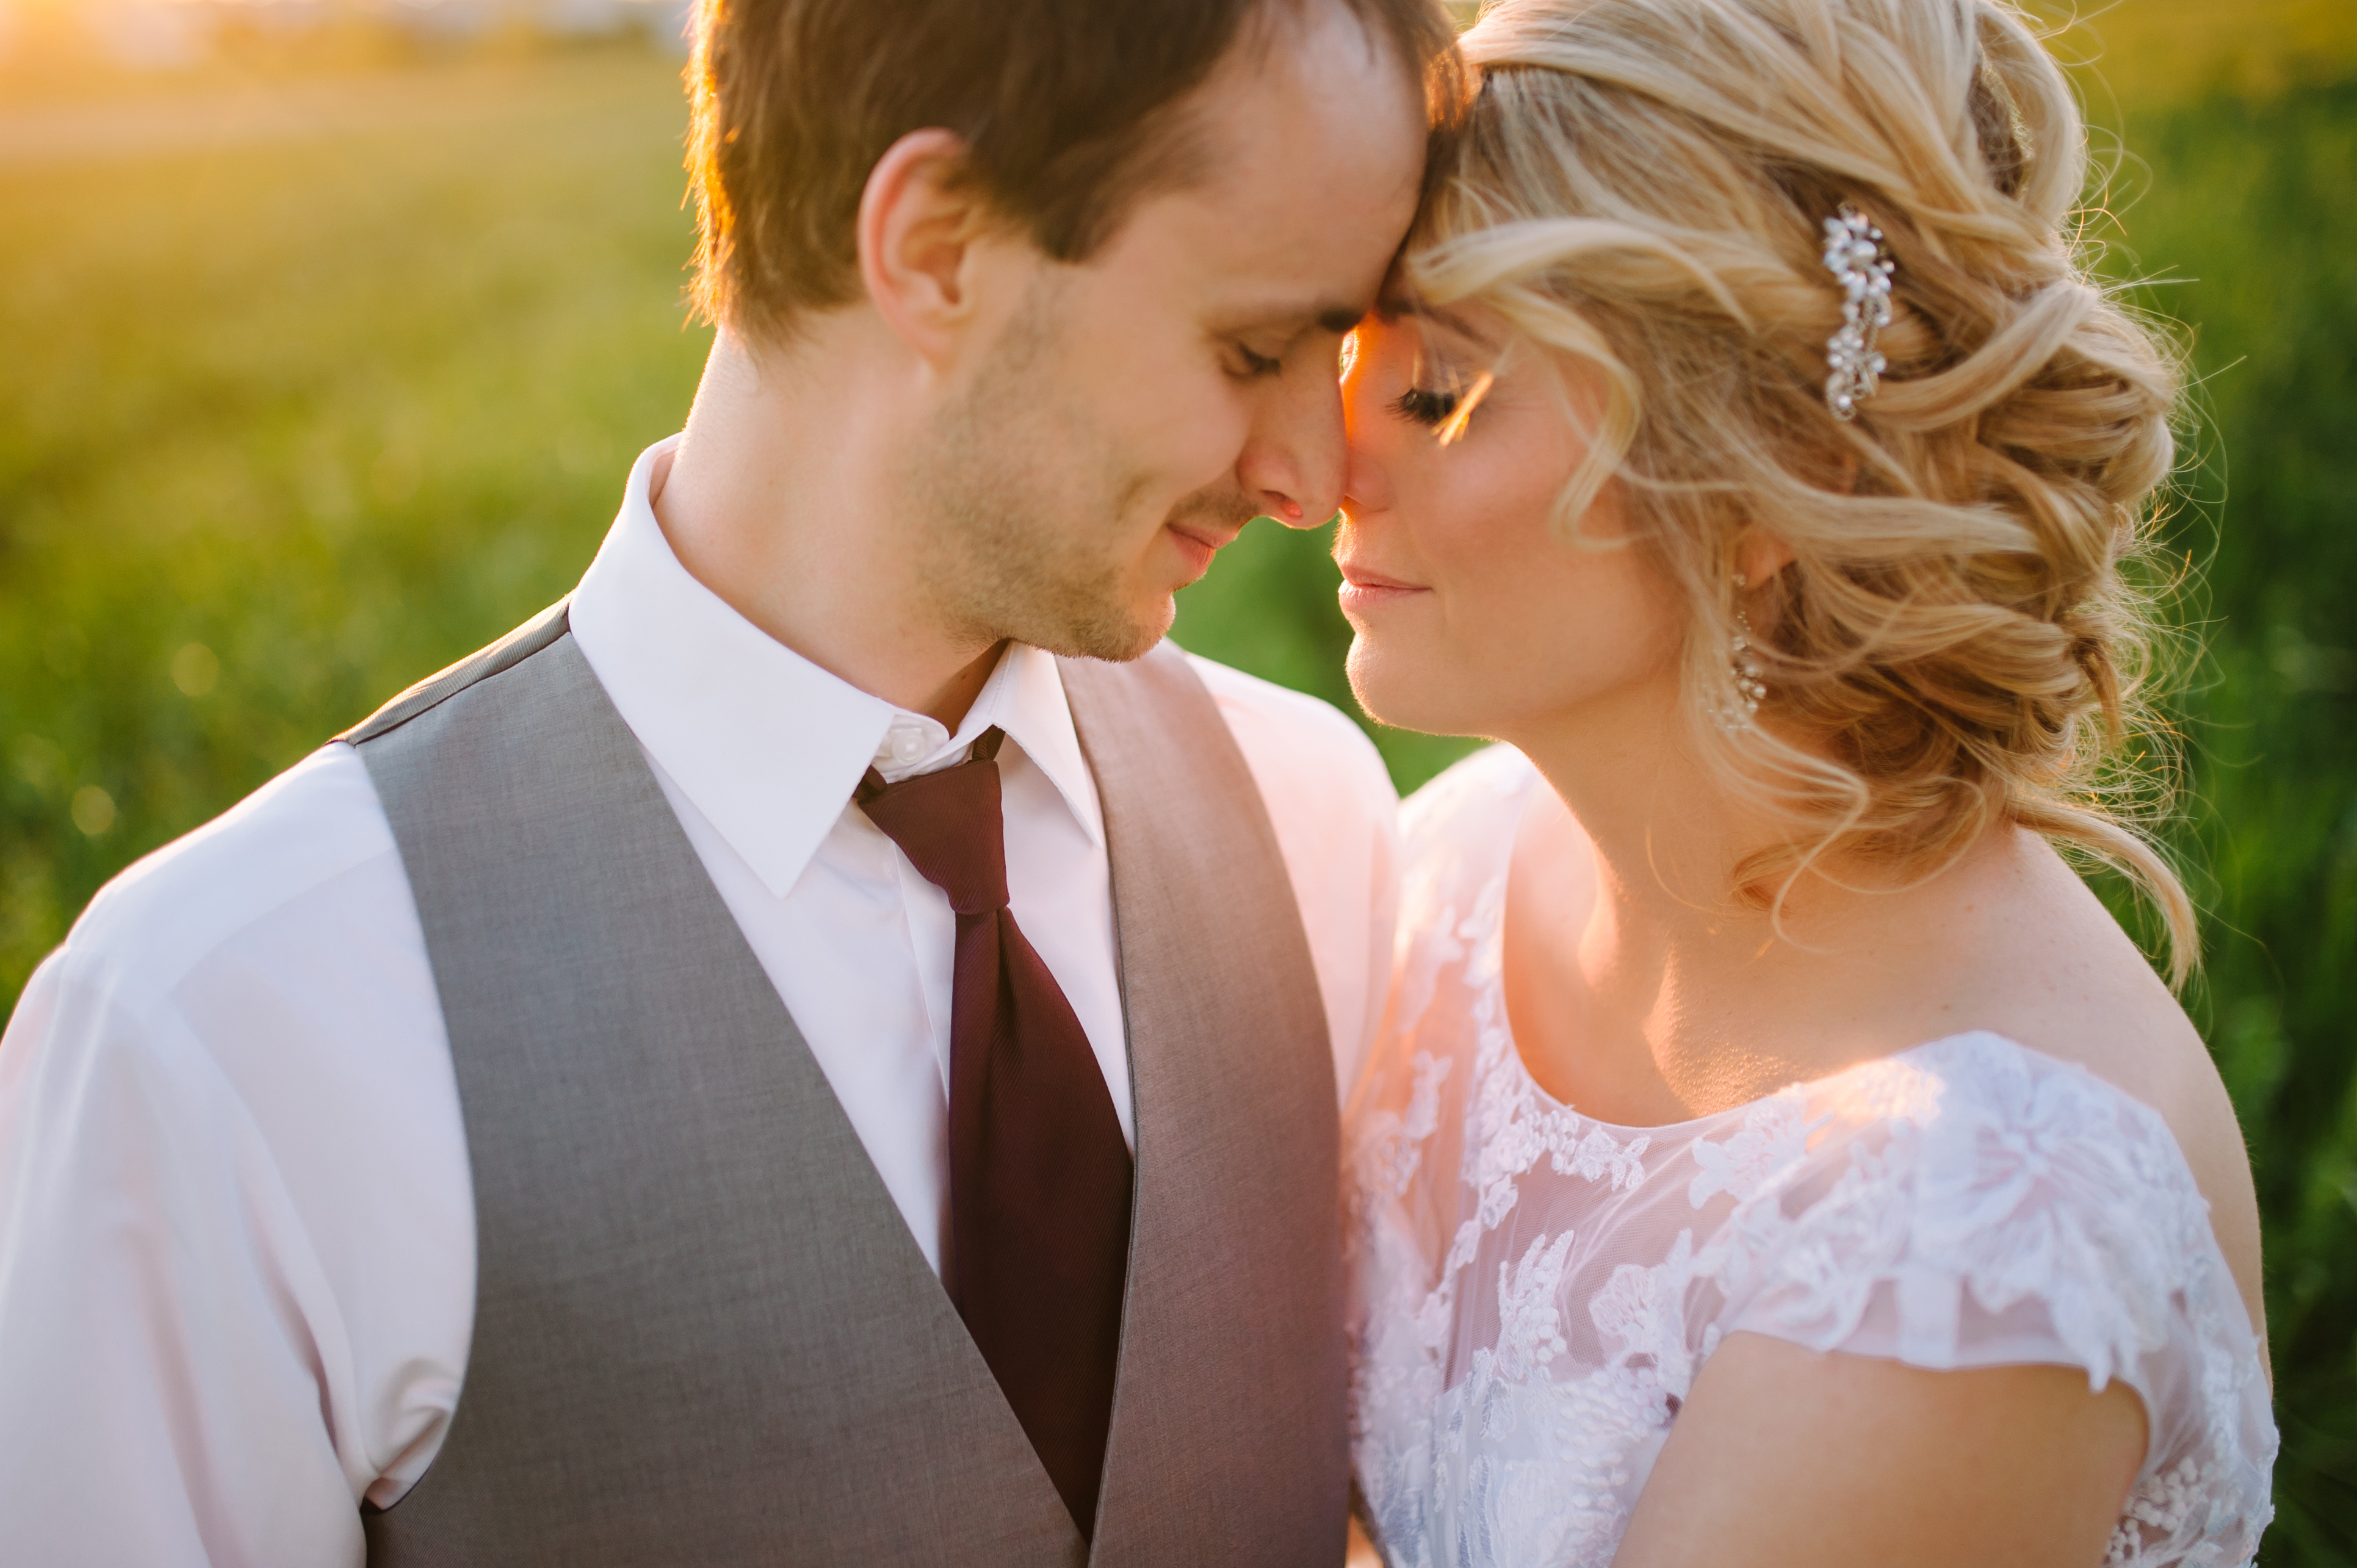 Sunset wedding photos taken by Stephanie Marie Photography in North Liberty, Iowa at South Slope Cooperative